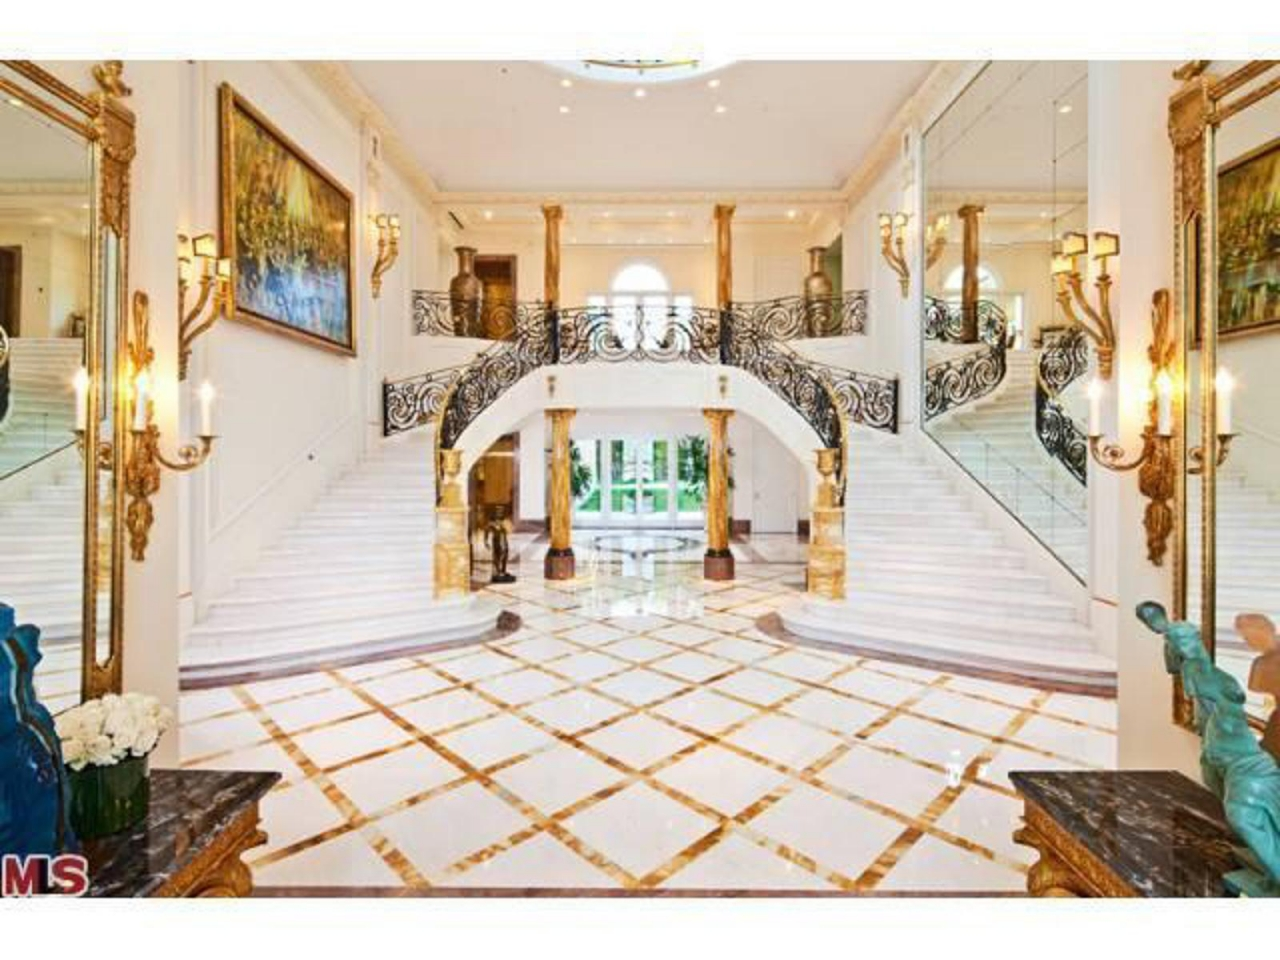 Bel Air Mega Mansion For Sale Americas Most Expensive Homes For Sale Luxury Pictures